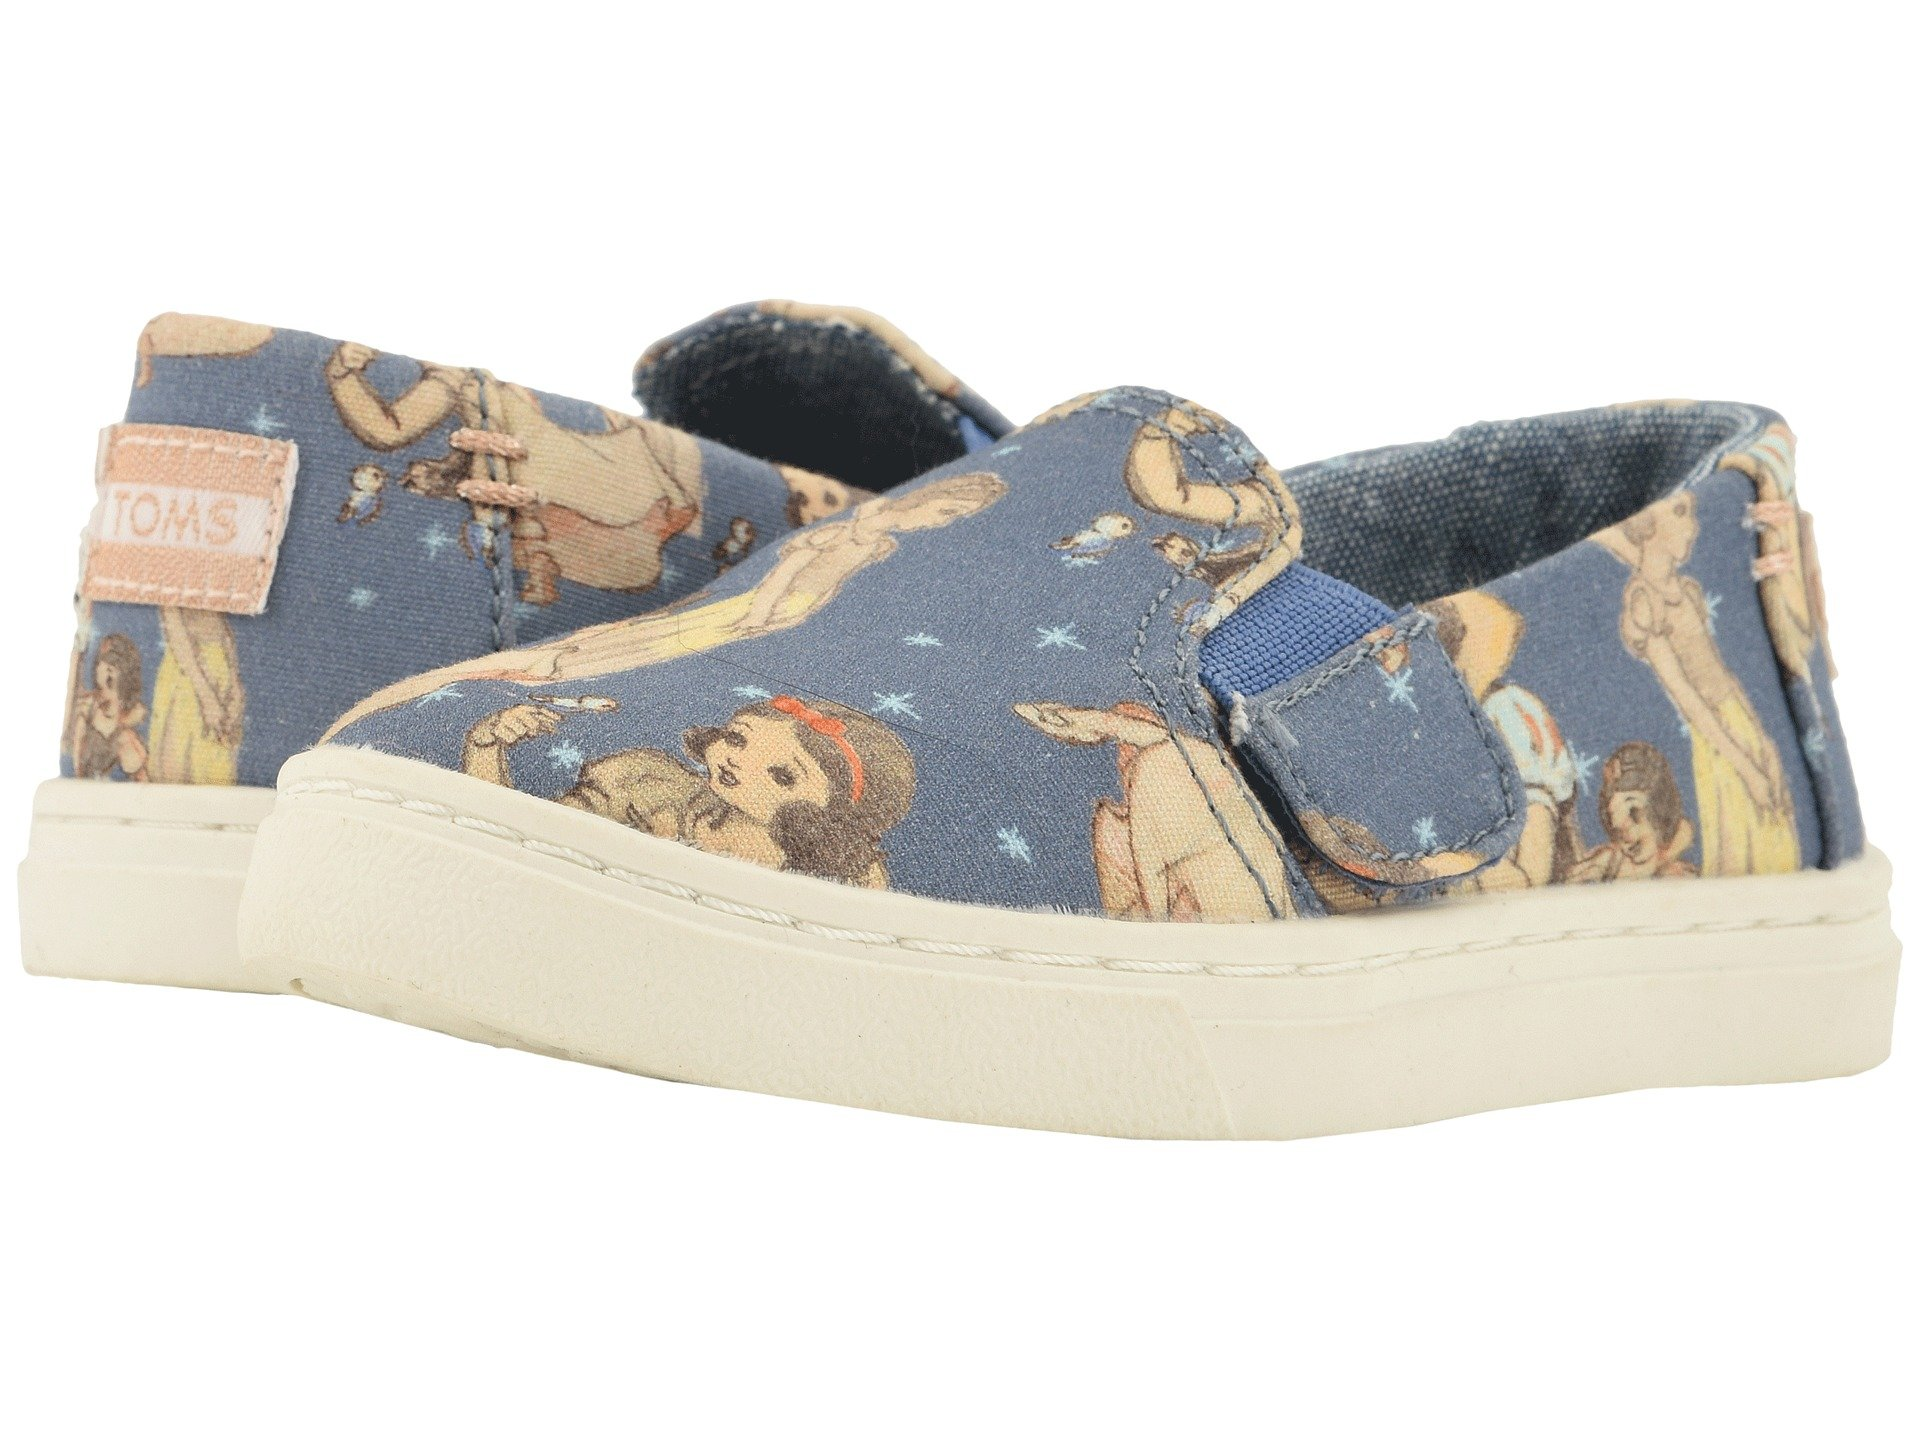 TOMS Girl's, Luca Slip on Shoes Blue 4 M by TOMS Kids (Image #7)